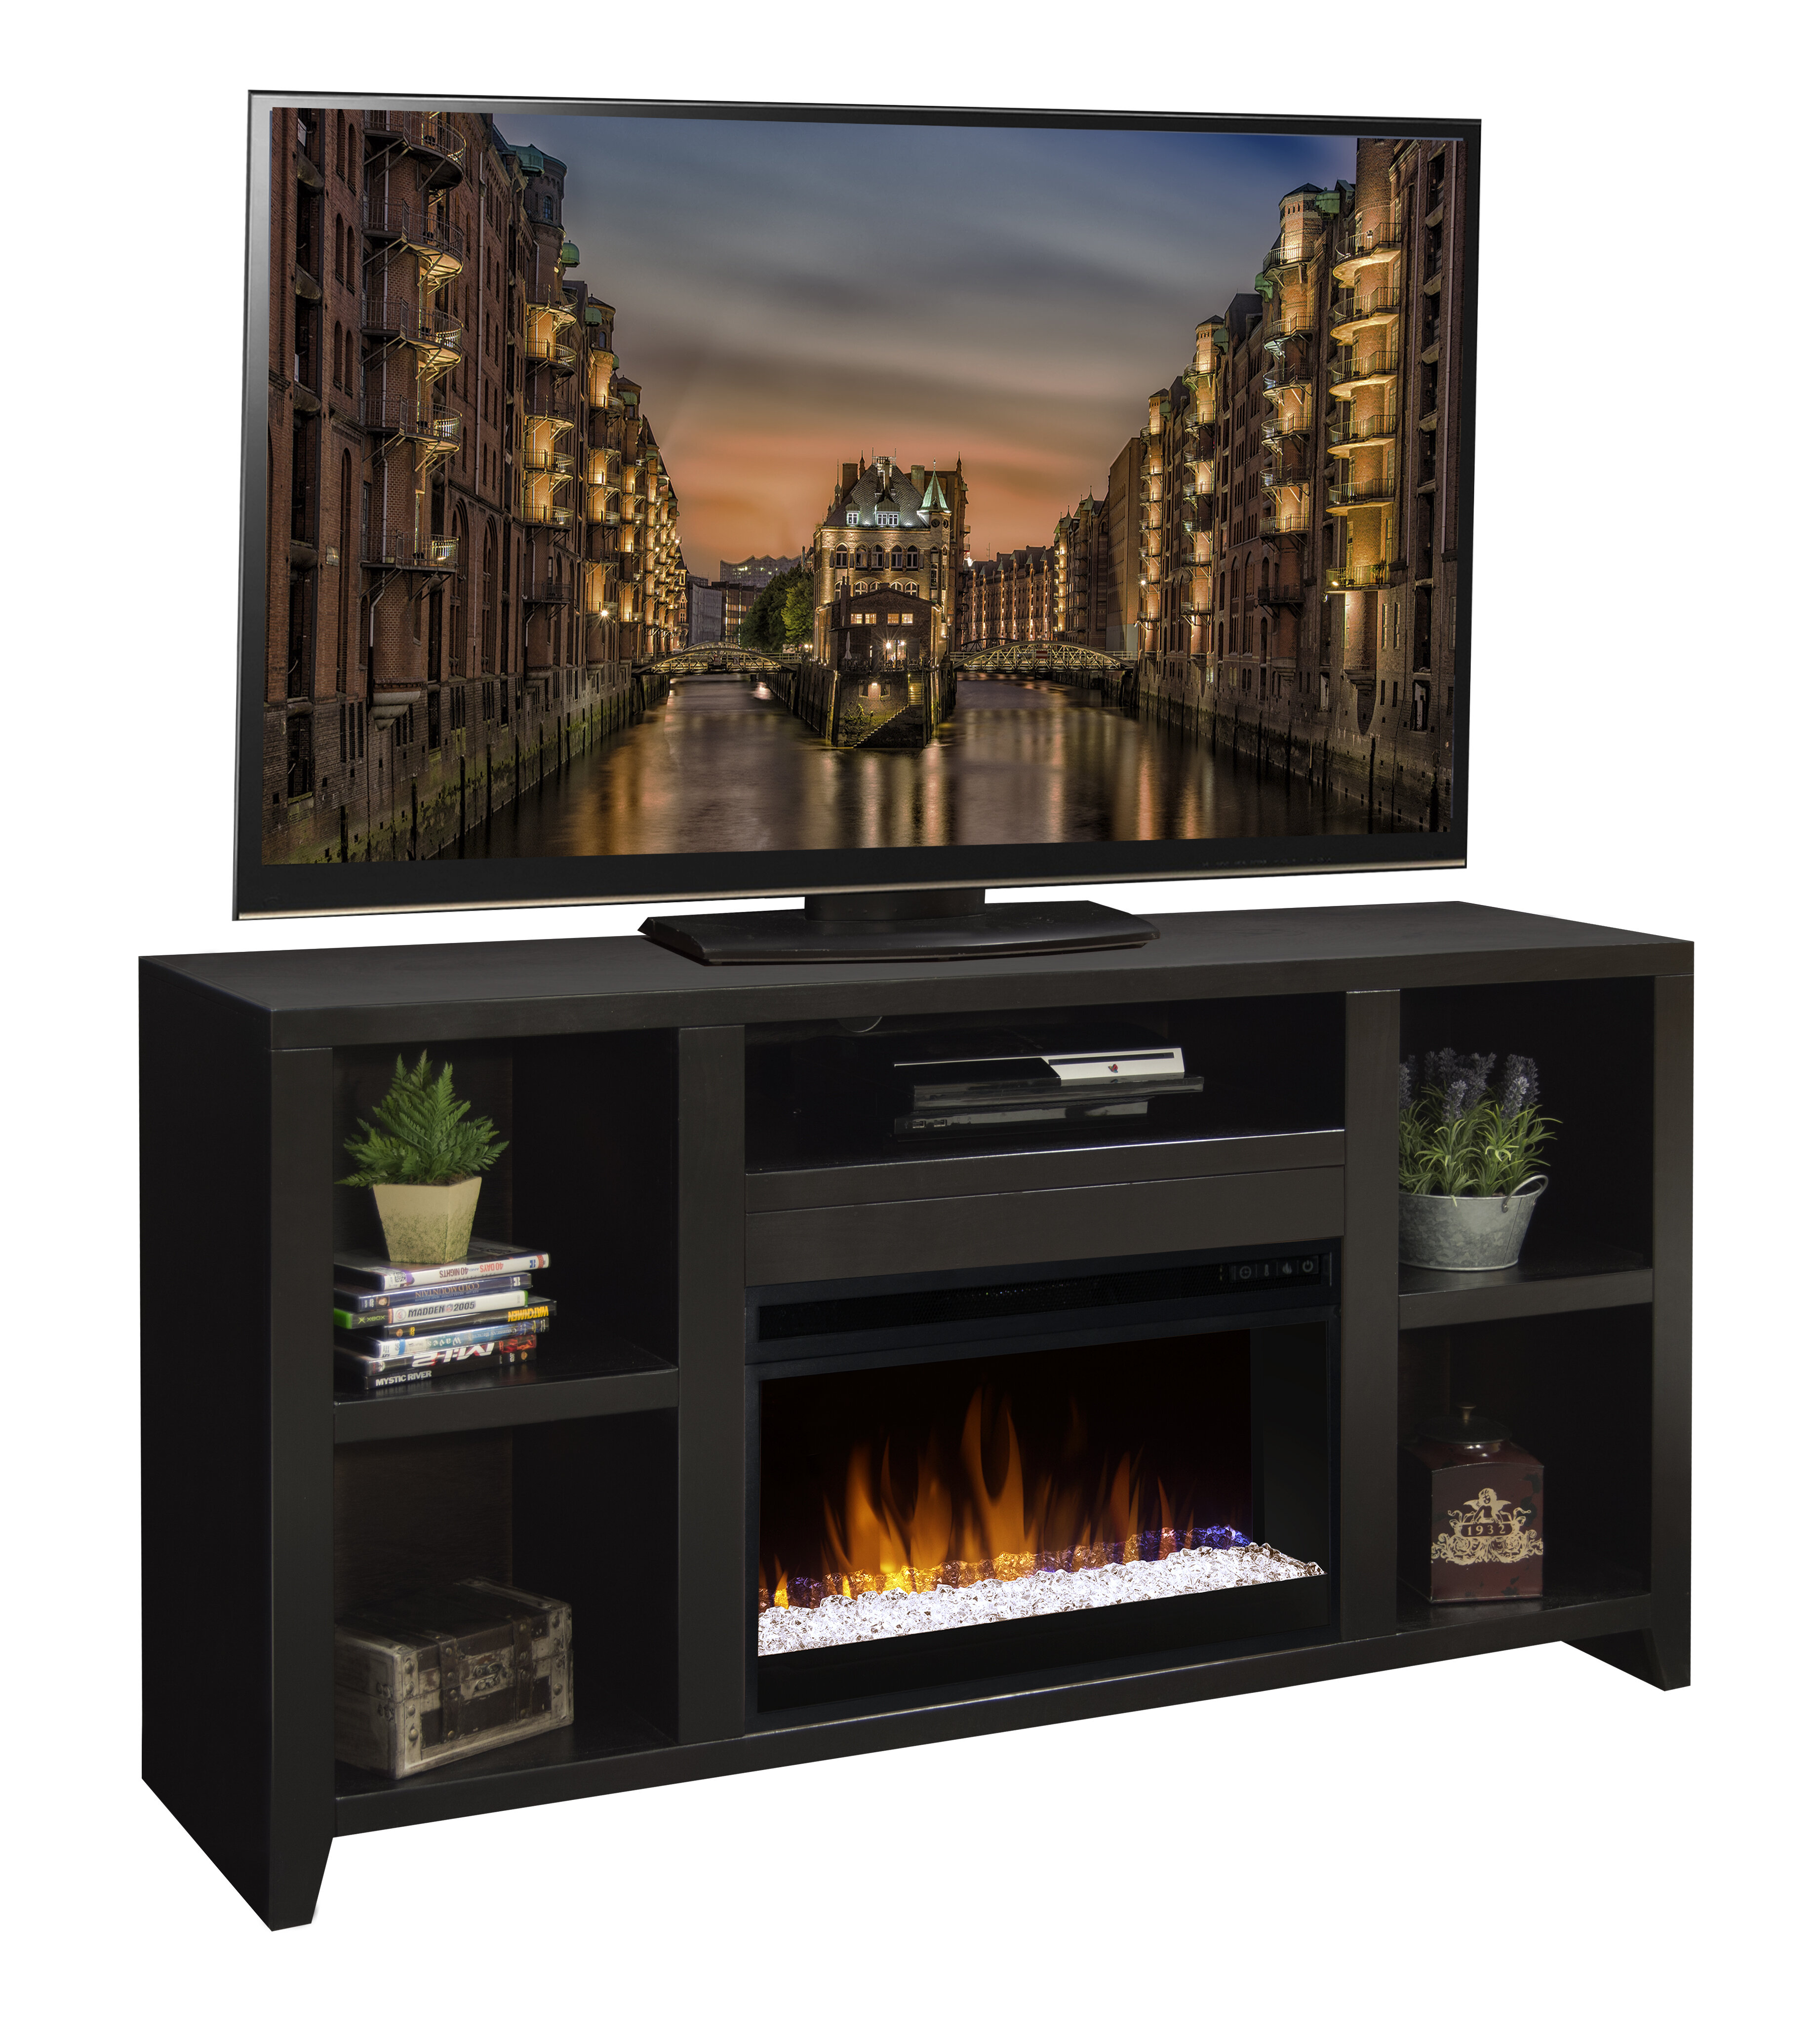 garretson tv stand for tvs up to 65 with fireplace